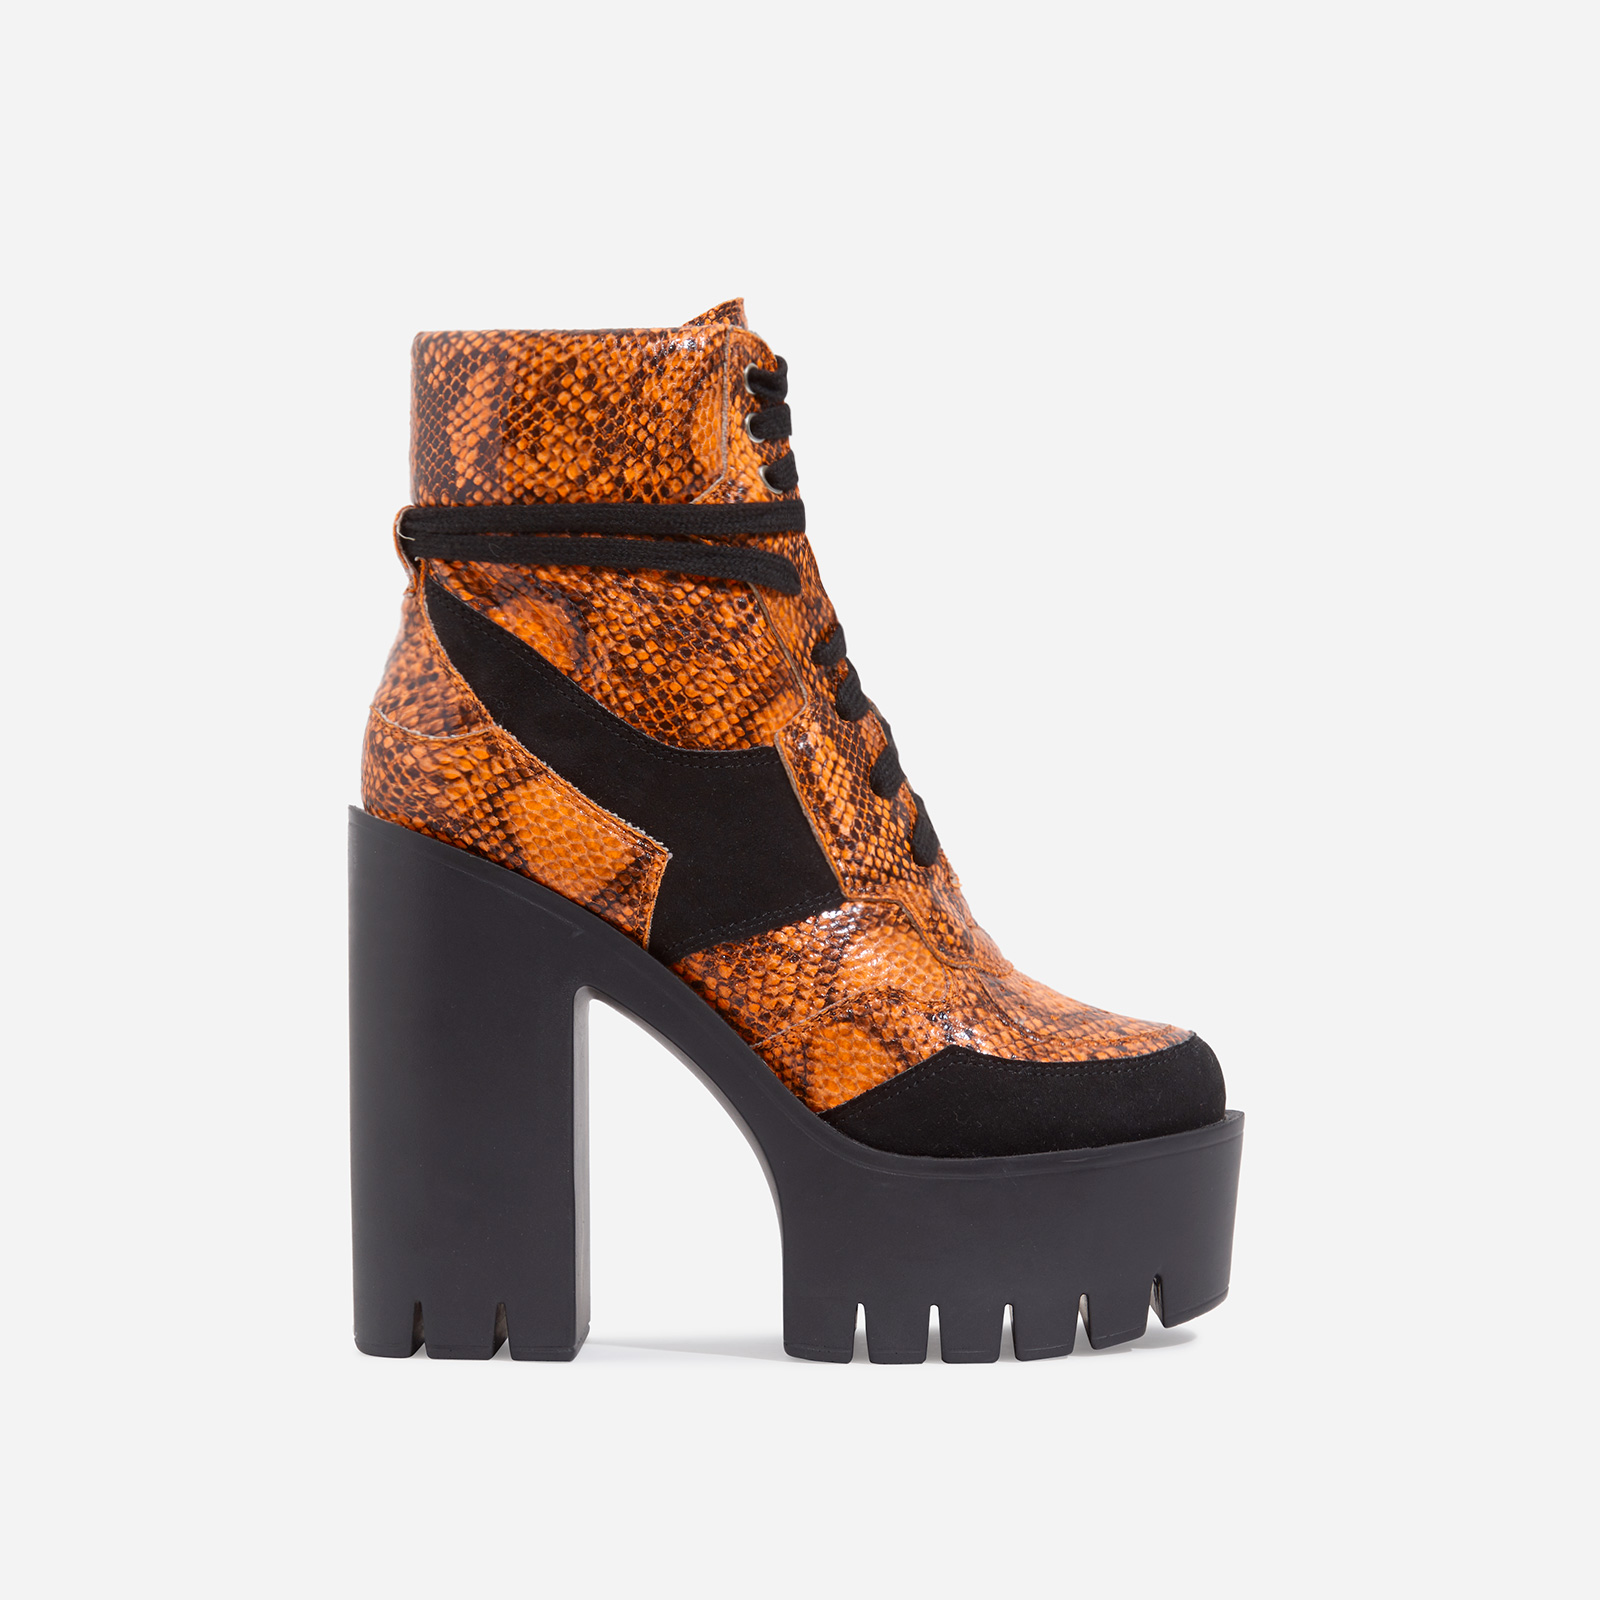 Penni Platform Lace Up Cleated Sole Ankle Bike Boot In Orange Snake Print Faux Leather